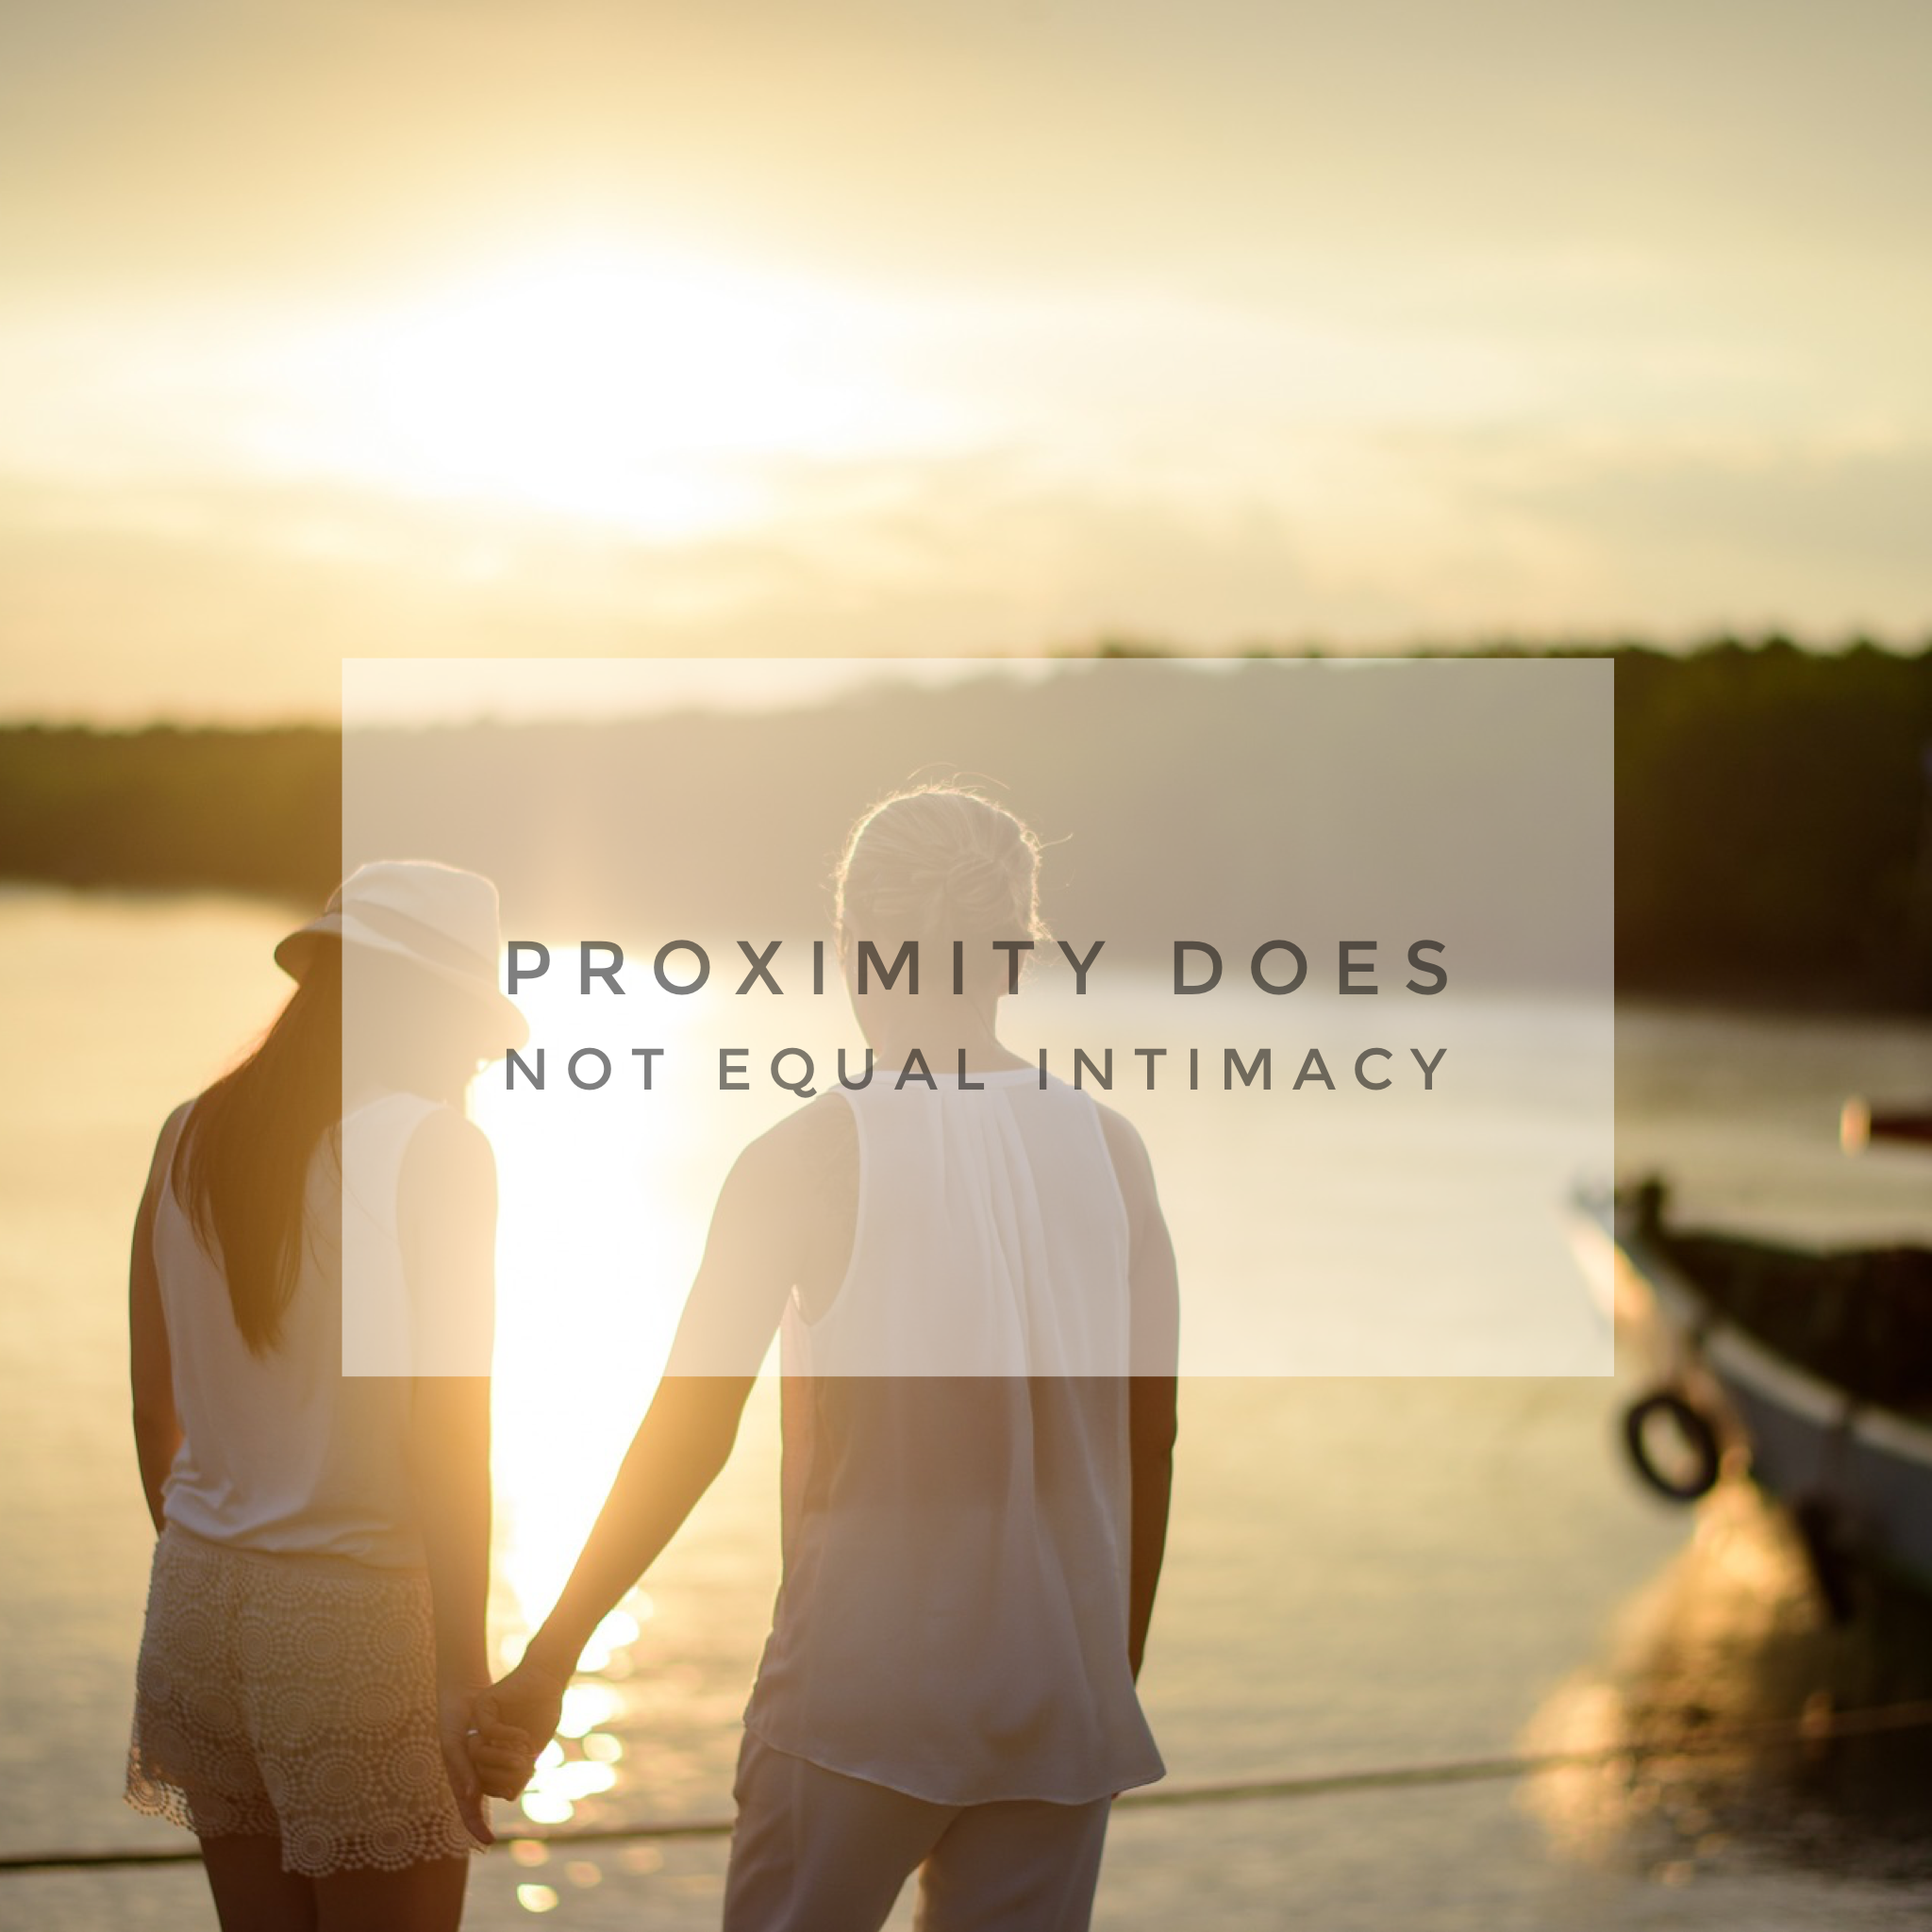 intimacy with god What does pursuing real intimacy with god look like it starts with a prayer: take me deeper into your presence i want more of you, jesus, in my life.